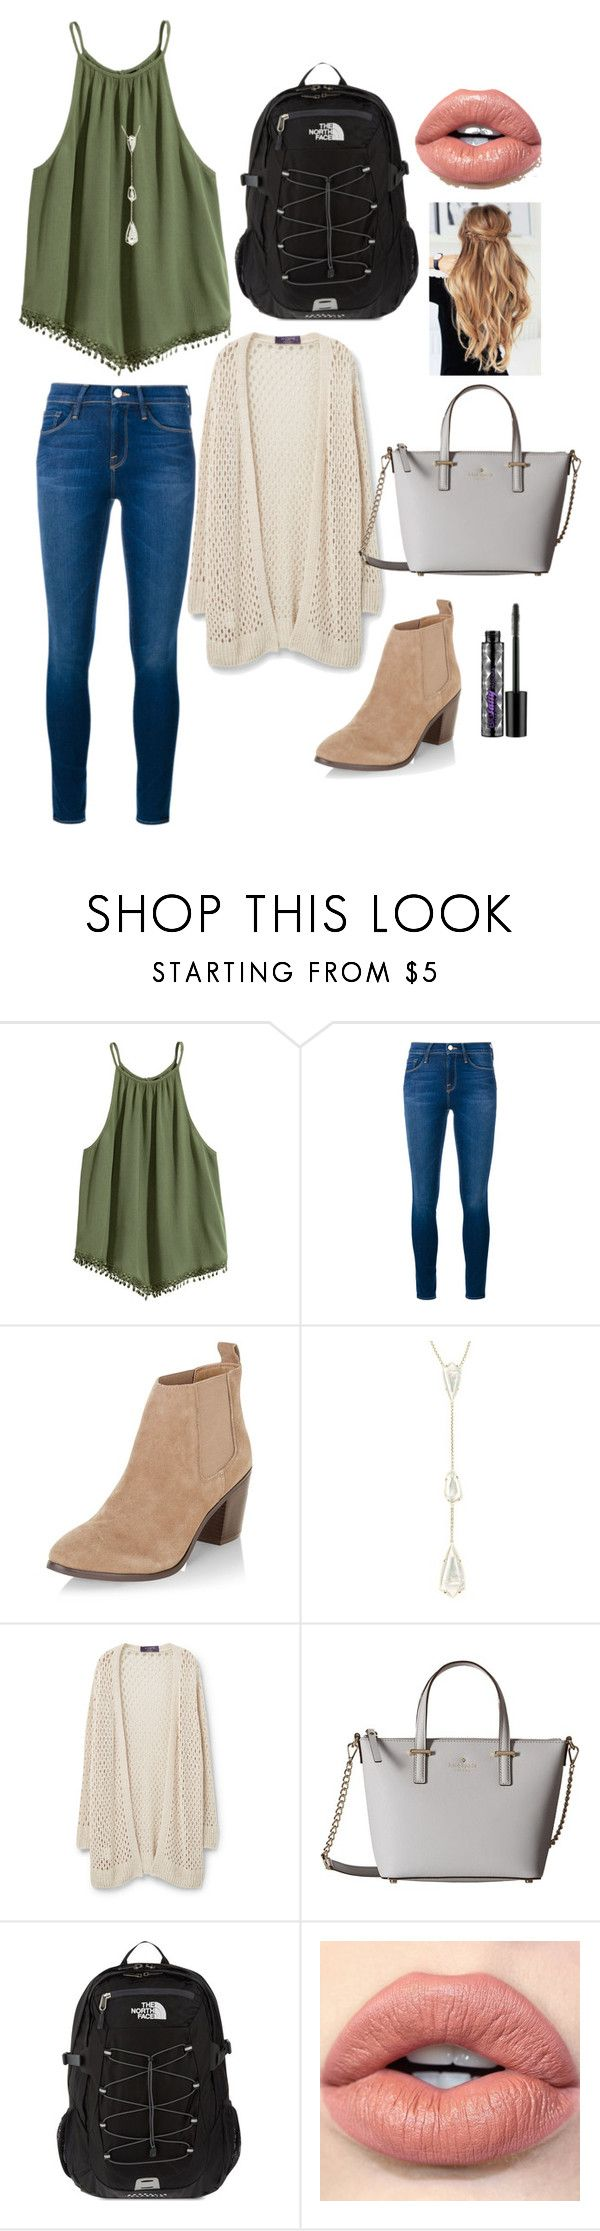 """""""school outfit"""" by mkhays ❤ liked on Polyvore featuring Frame, New Look, Kendra Scott, Violeta by Mango, Kate Spade, The North Face and Urban Decay"""